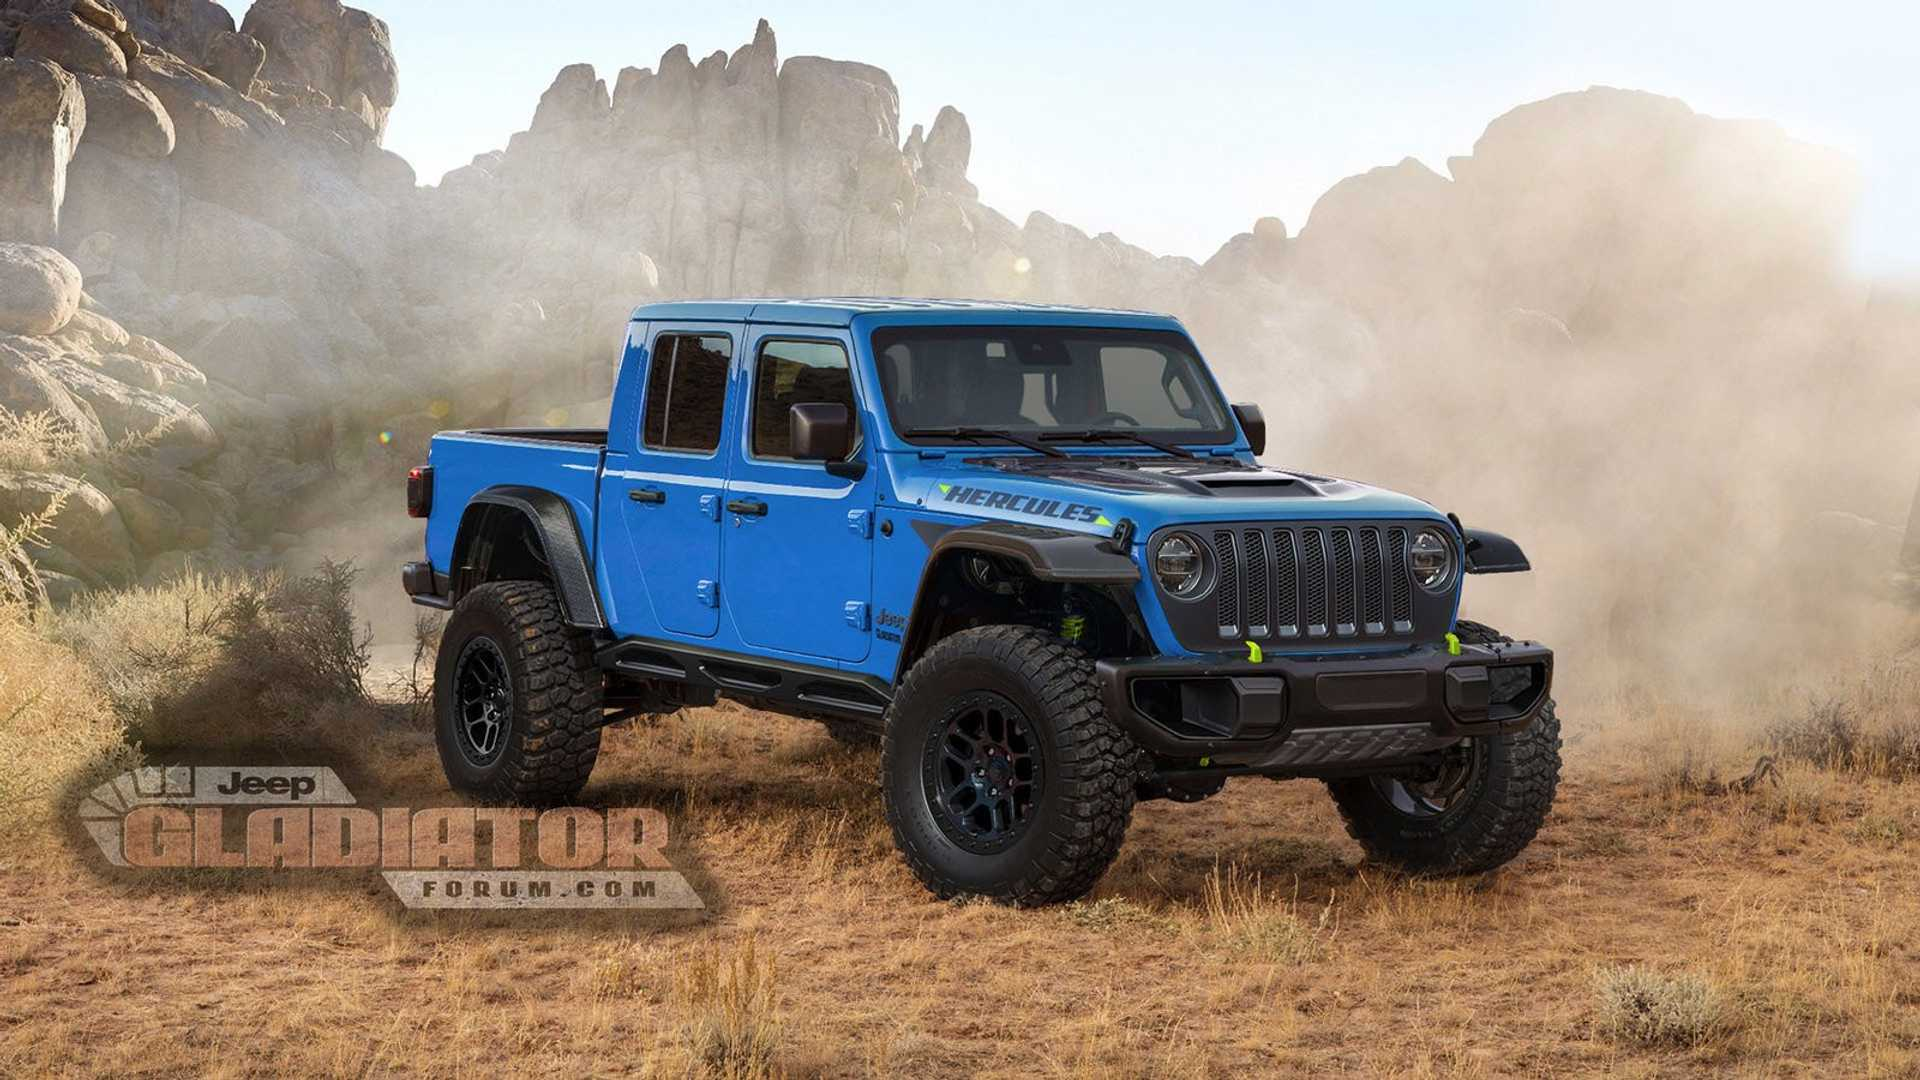 65 New 2020 Jeep Gladiator Hercules Overview